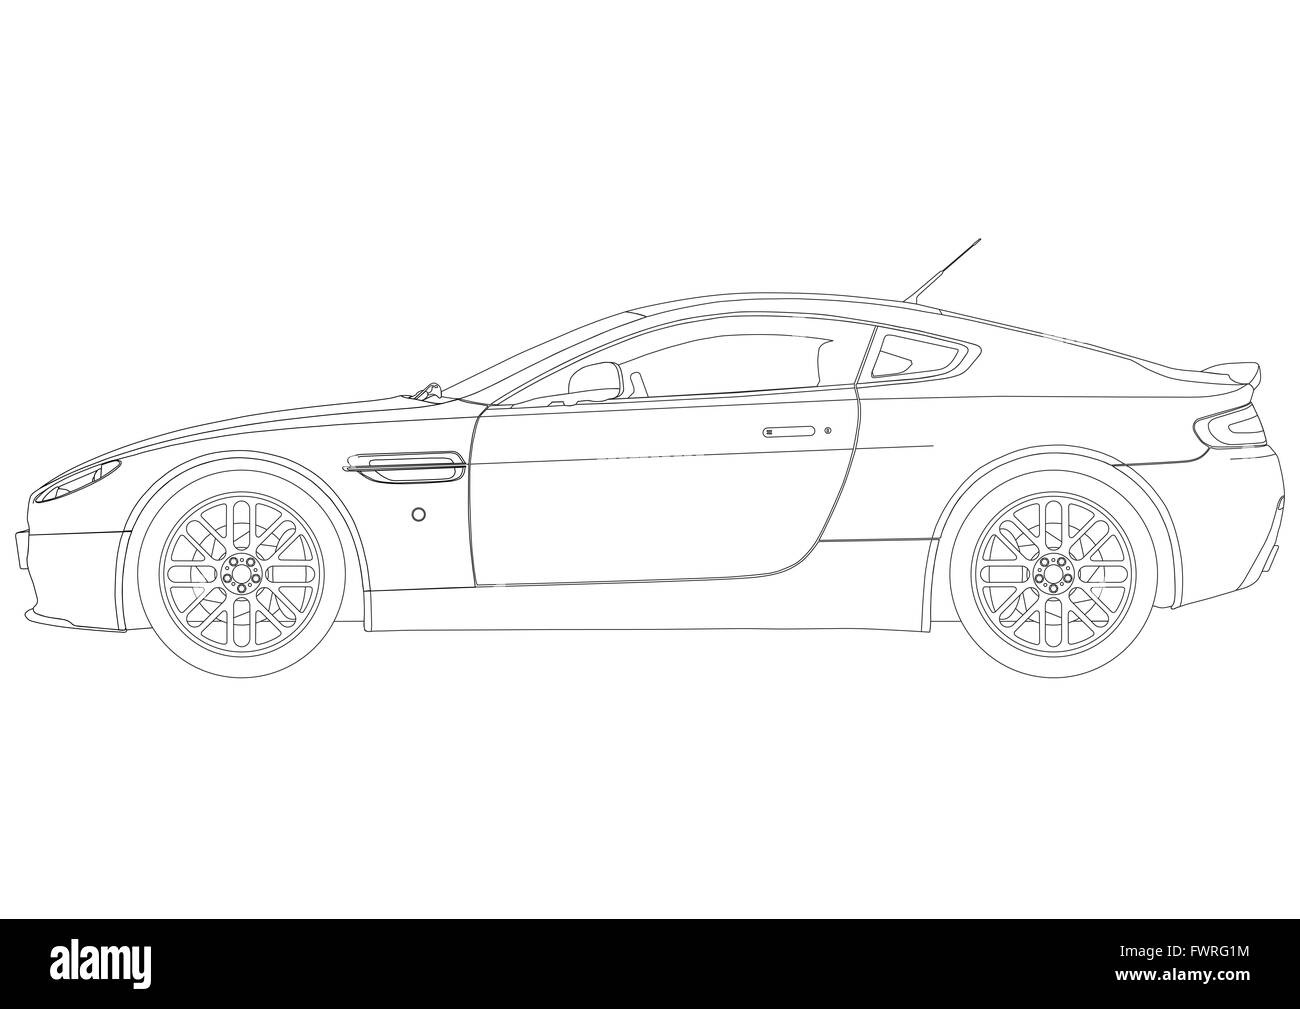 Line Drawing Of Aston Martin Sports Car From The Side Stock Photo Alamy